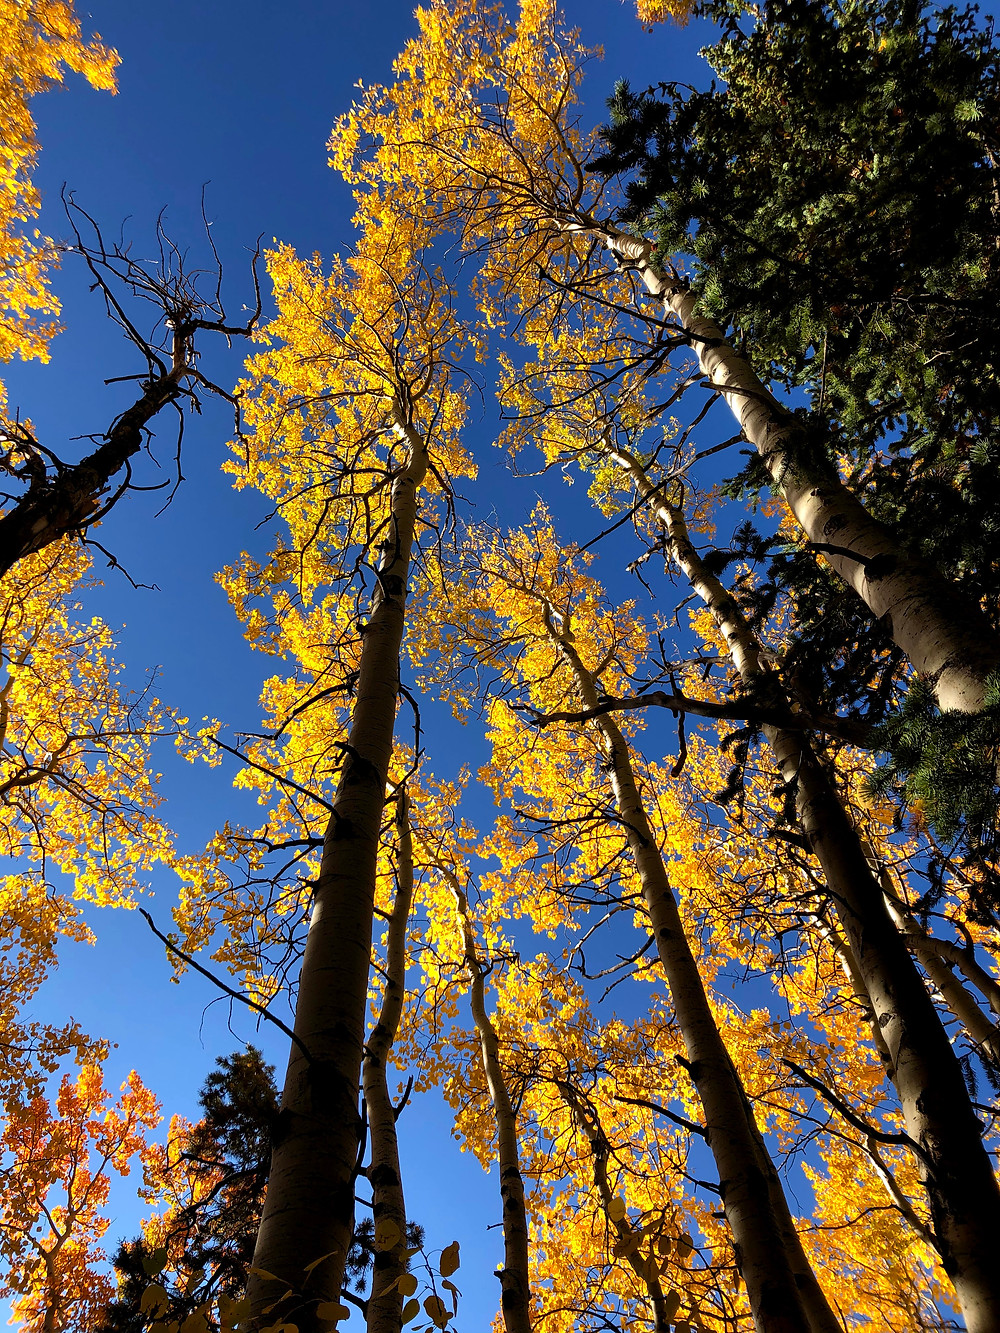 Tall golden aspens in the forest.